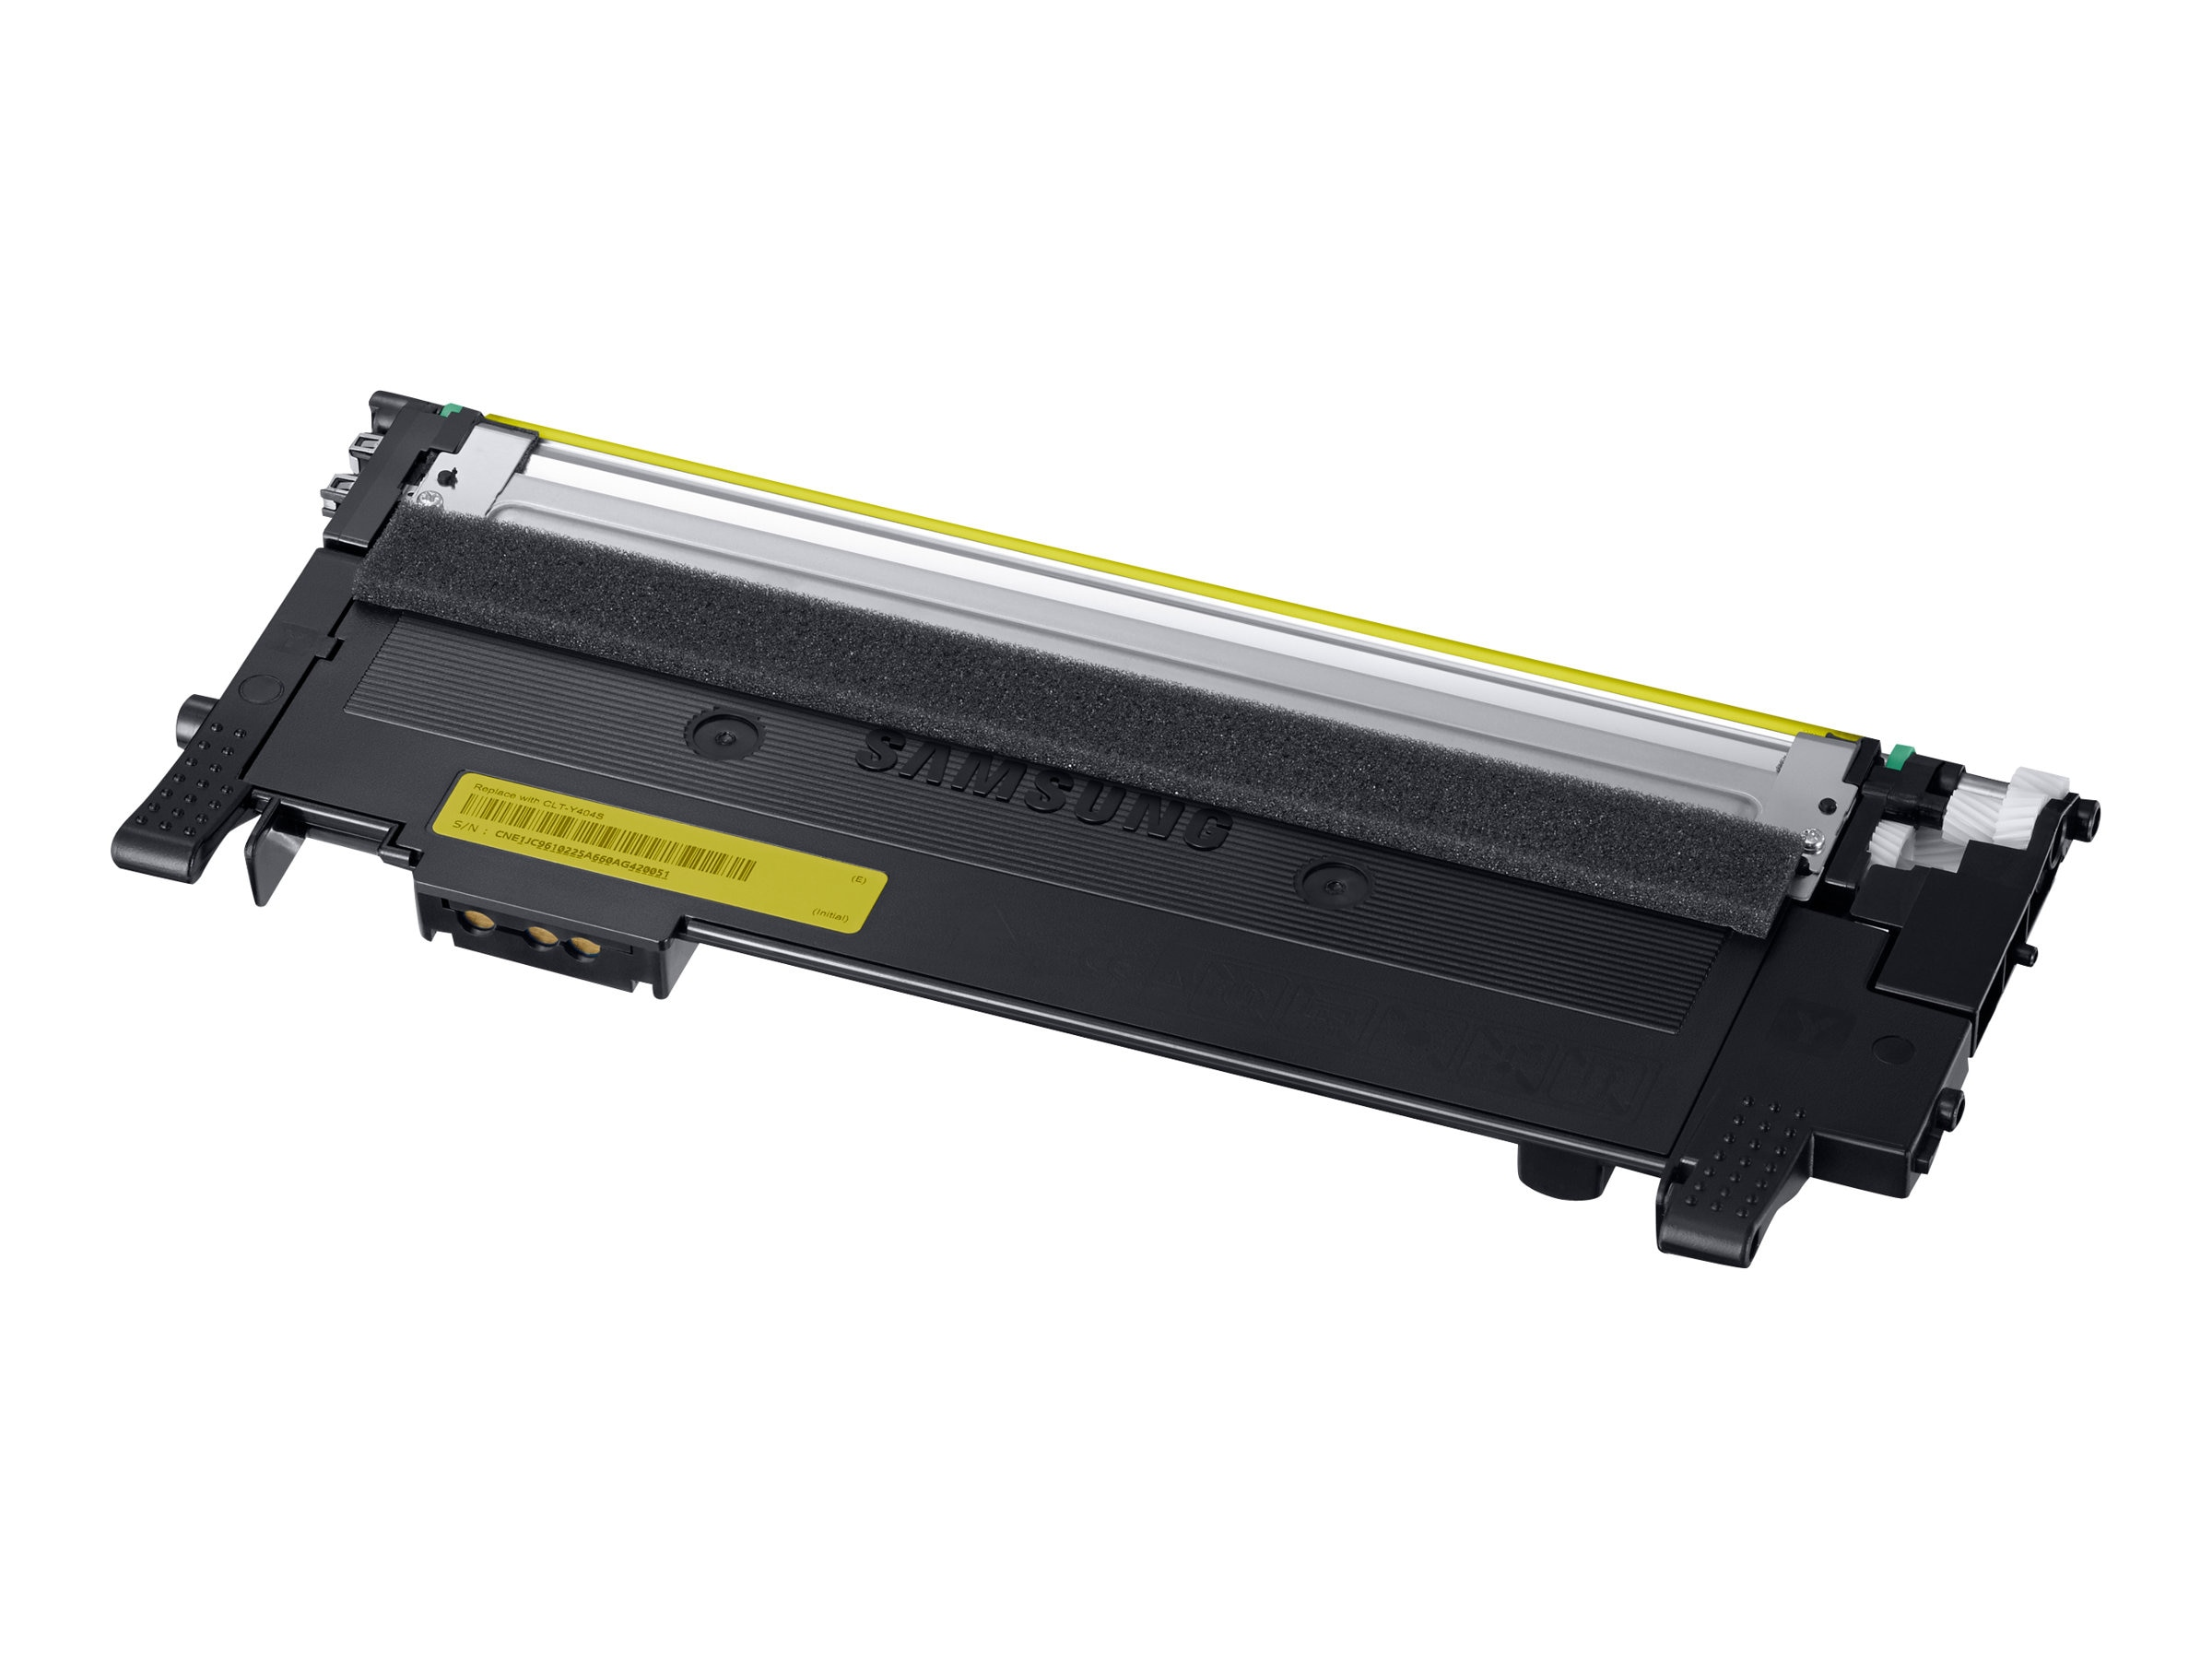 Samsung Yellow Toner Cartridge for XPress C430W, C480W & C480FW